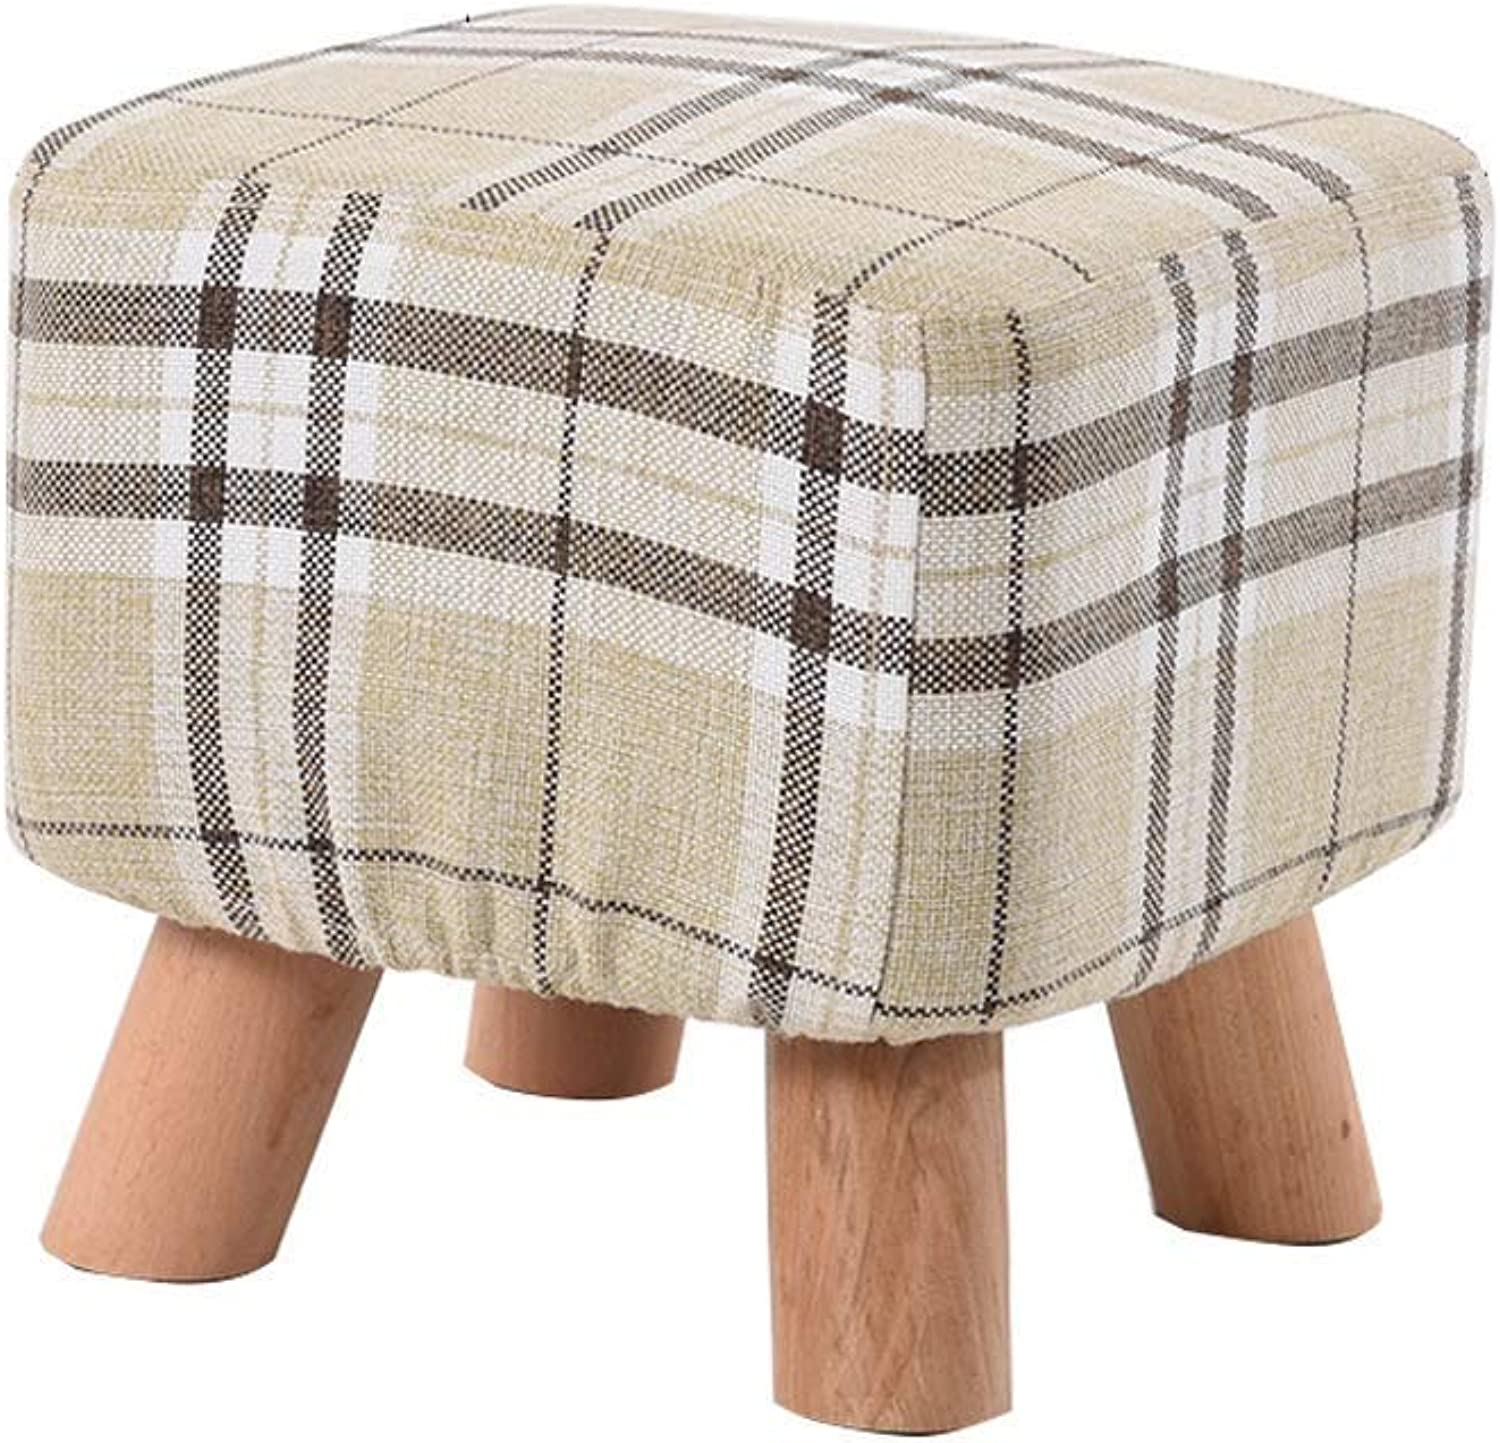 Change shoes Bench Footstool Solid Wood Production Chair Stool Household Multifunction LEBAO (color   Khaki)